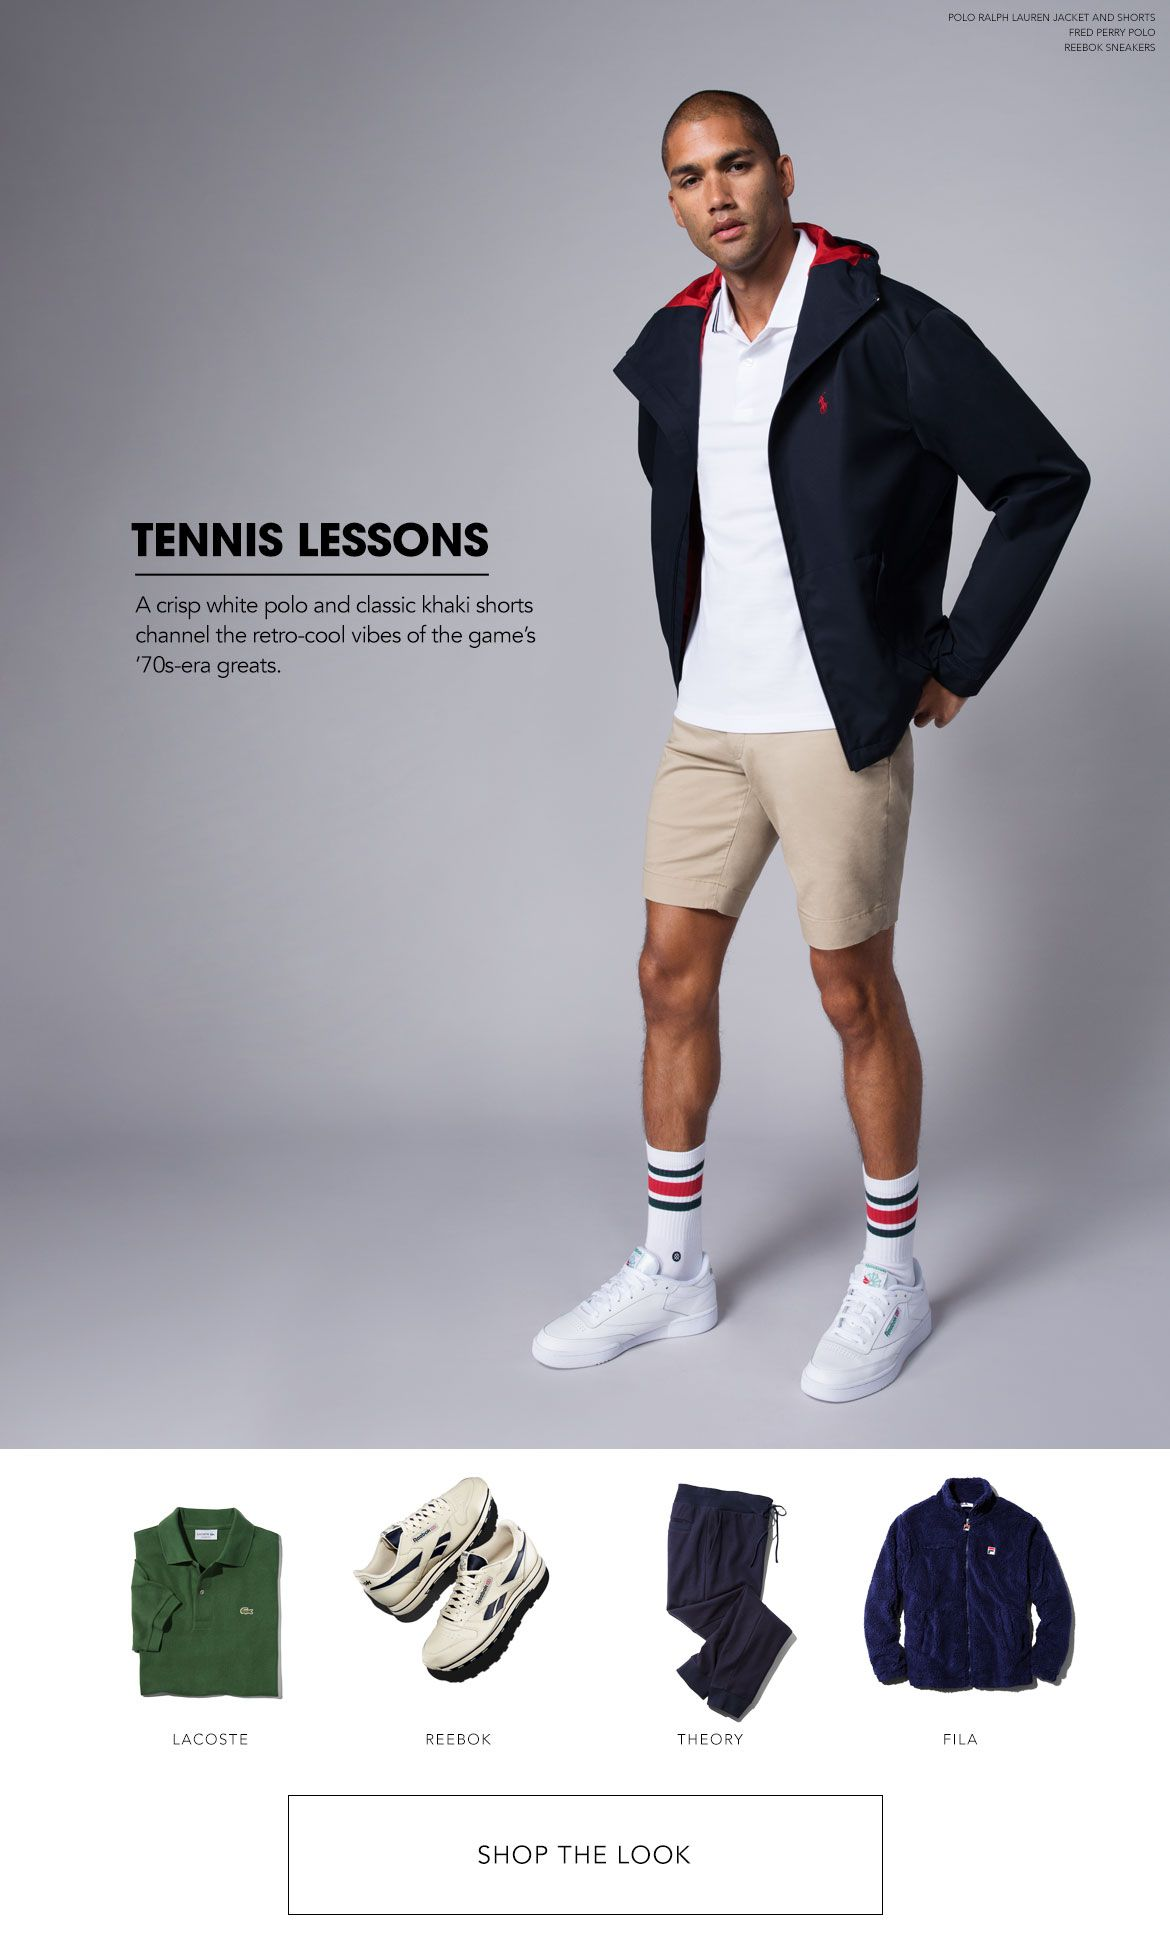 Styled for Tennis Lessons